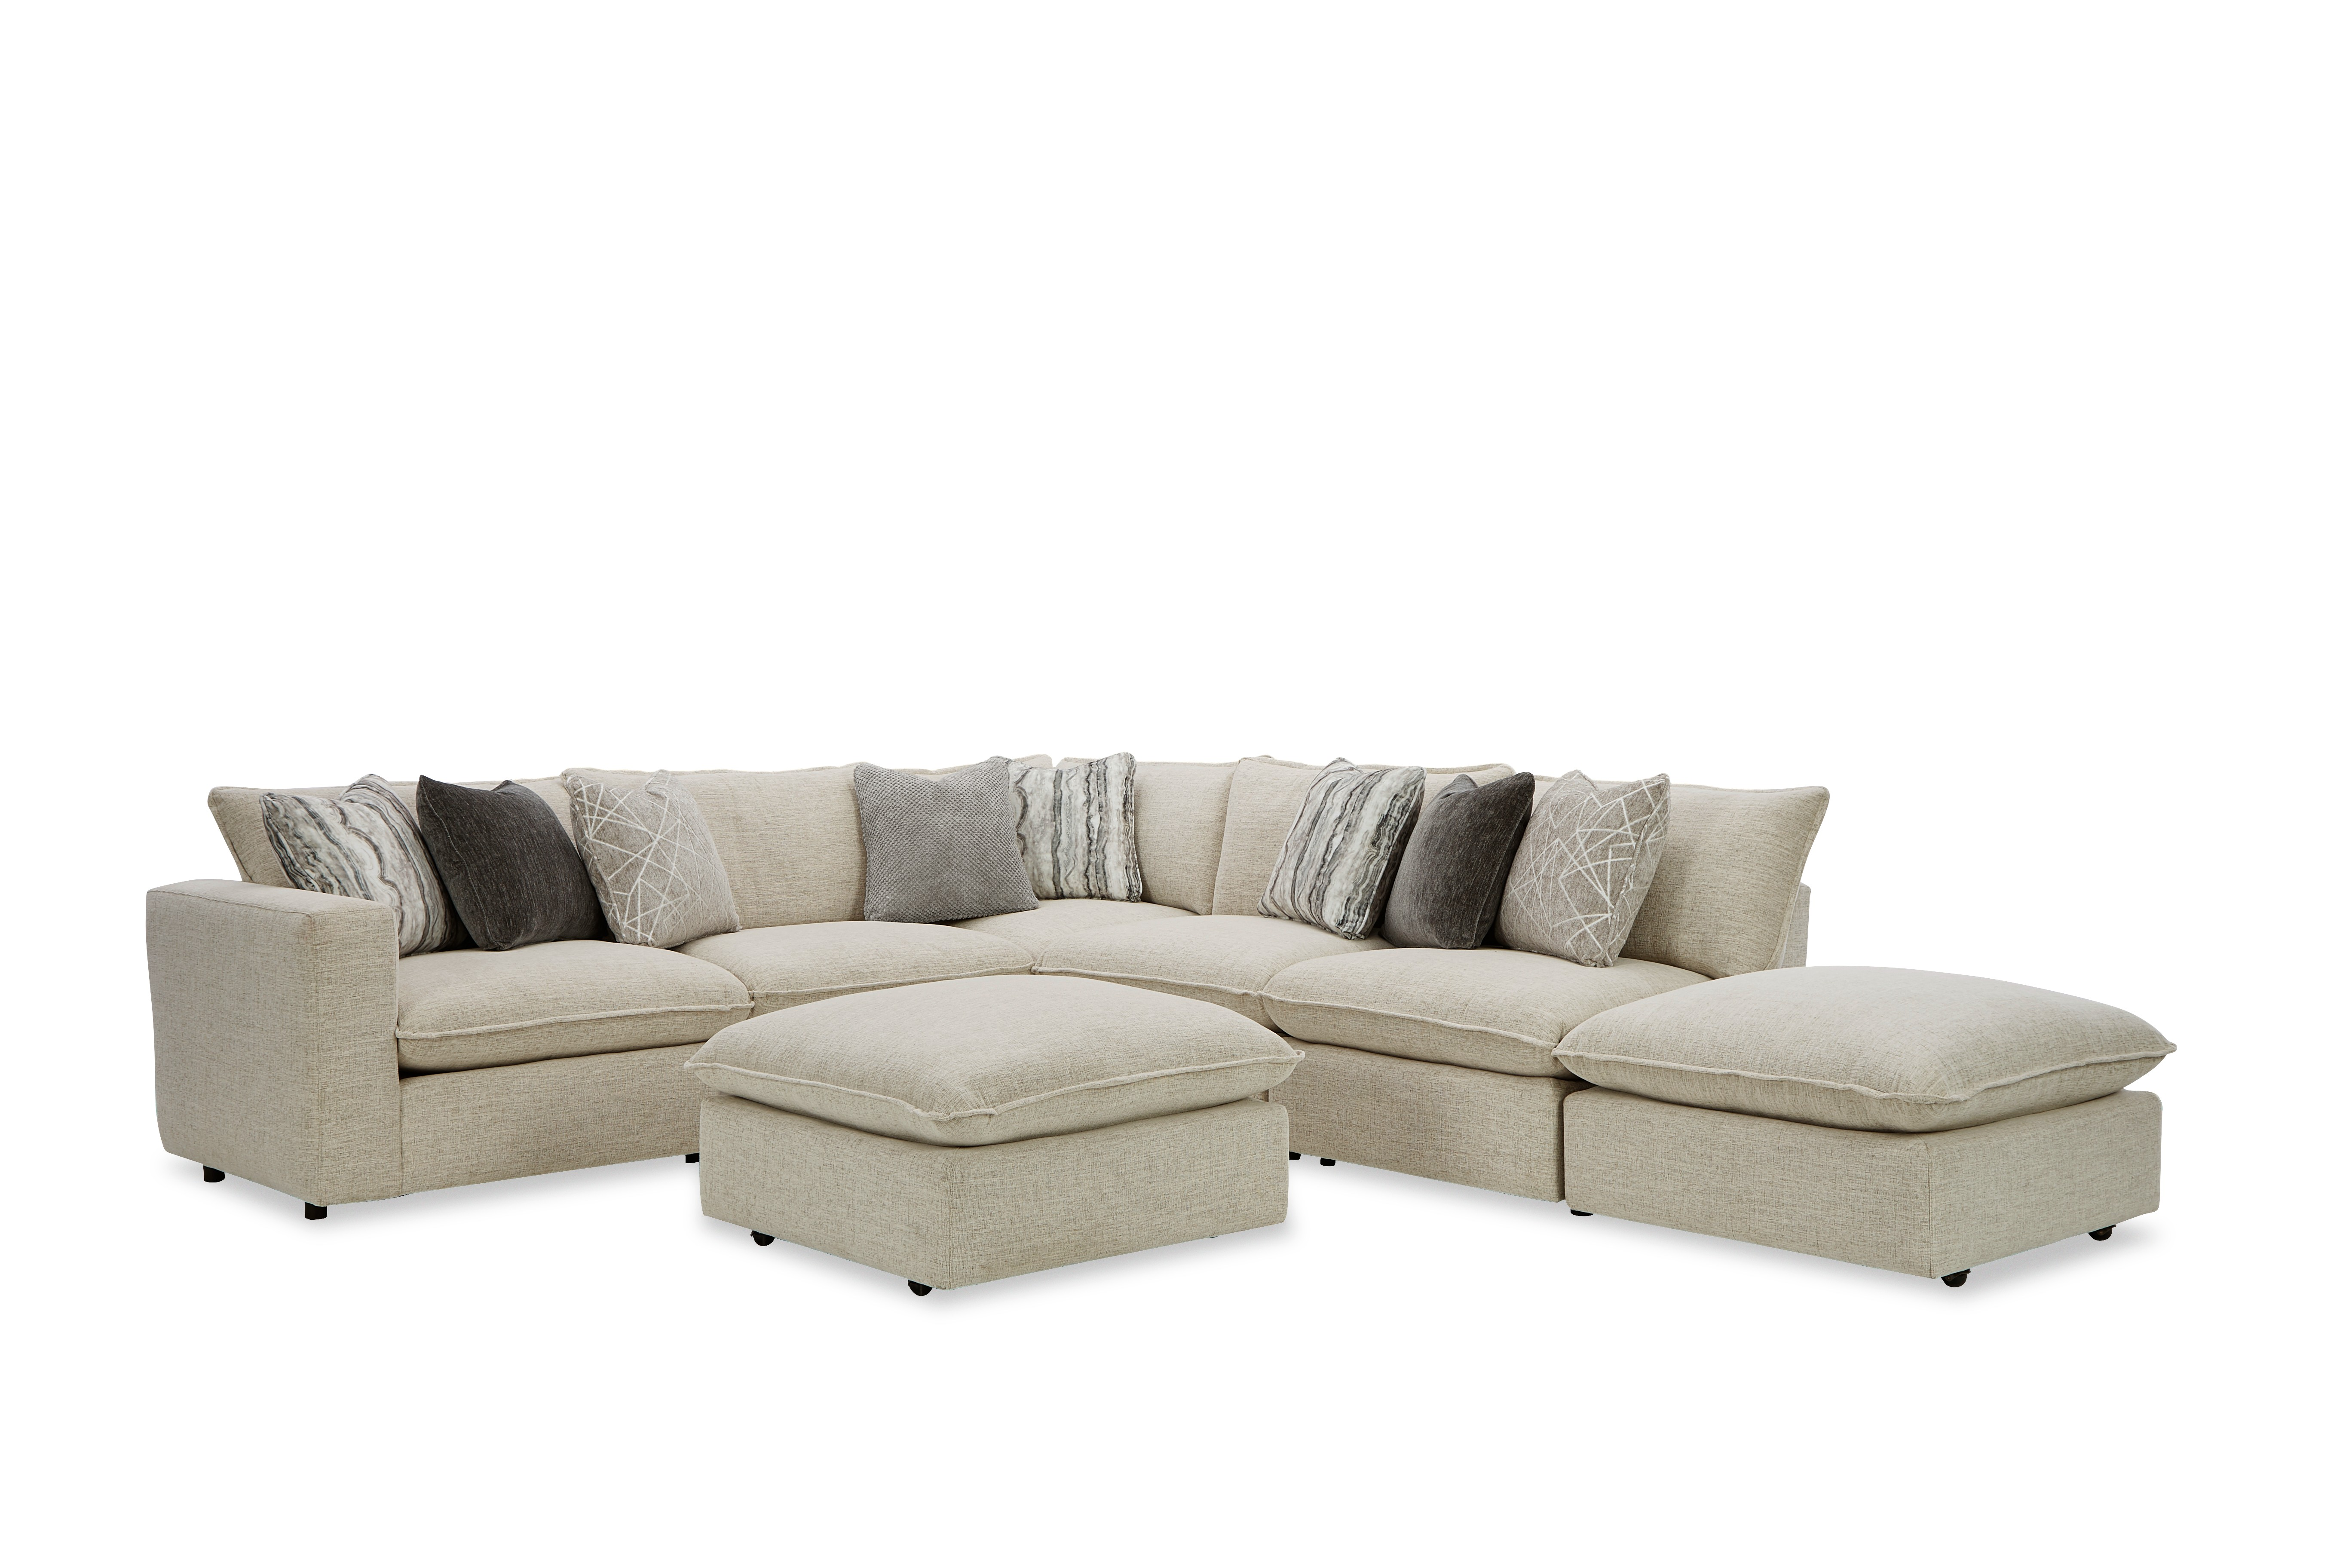 712741BD Sectional w/ Two Bumper Ottomans & LAF Chair by Craftmaster at Prime Brothers Furniture